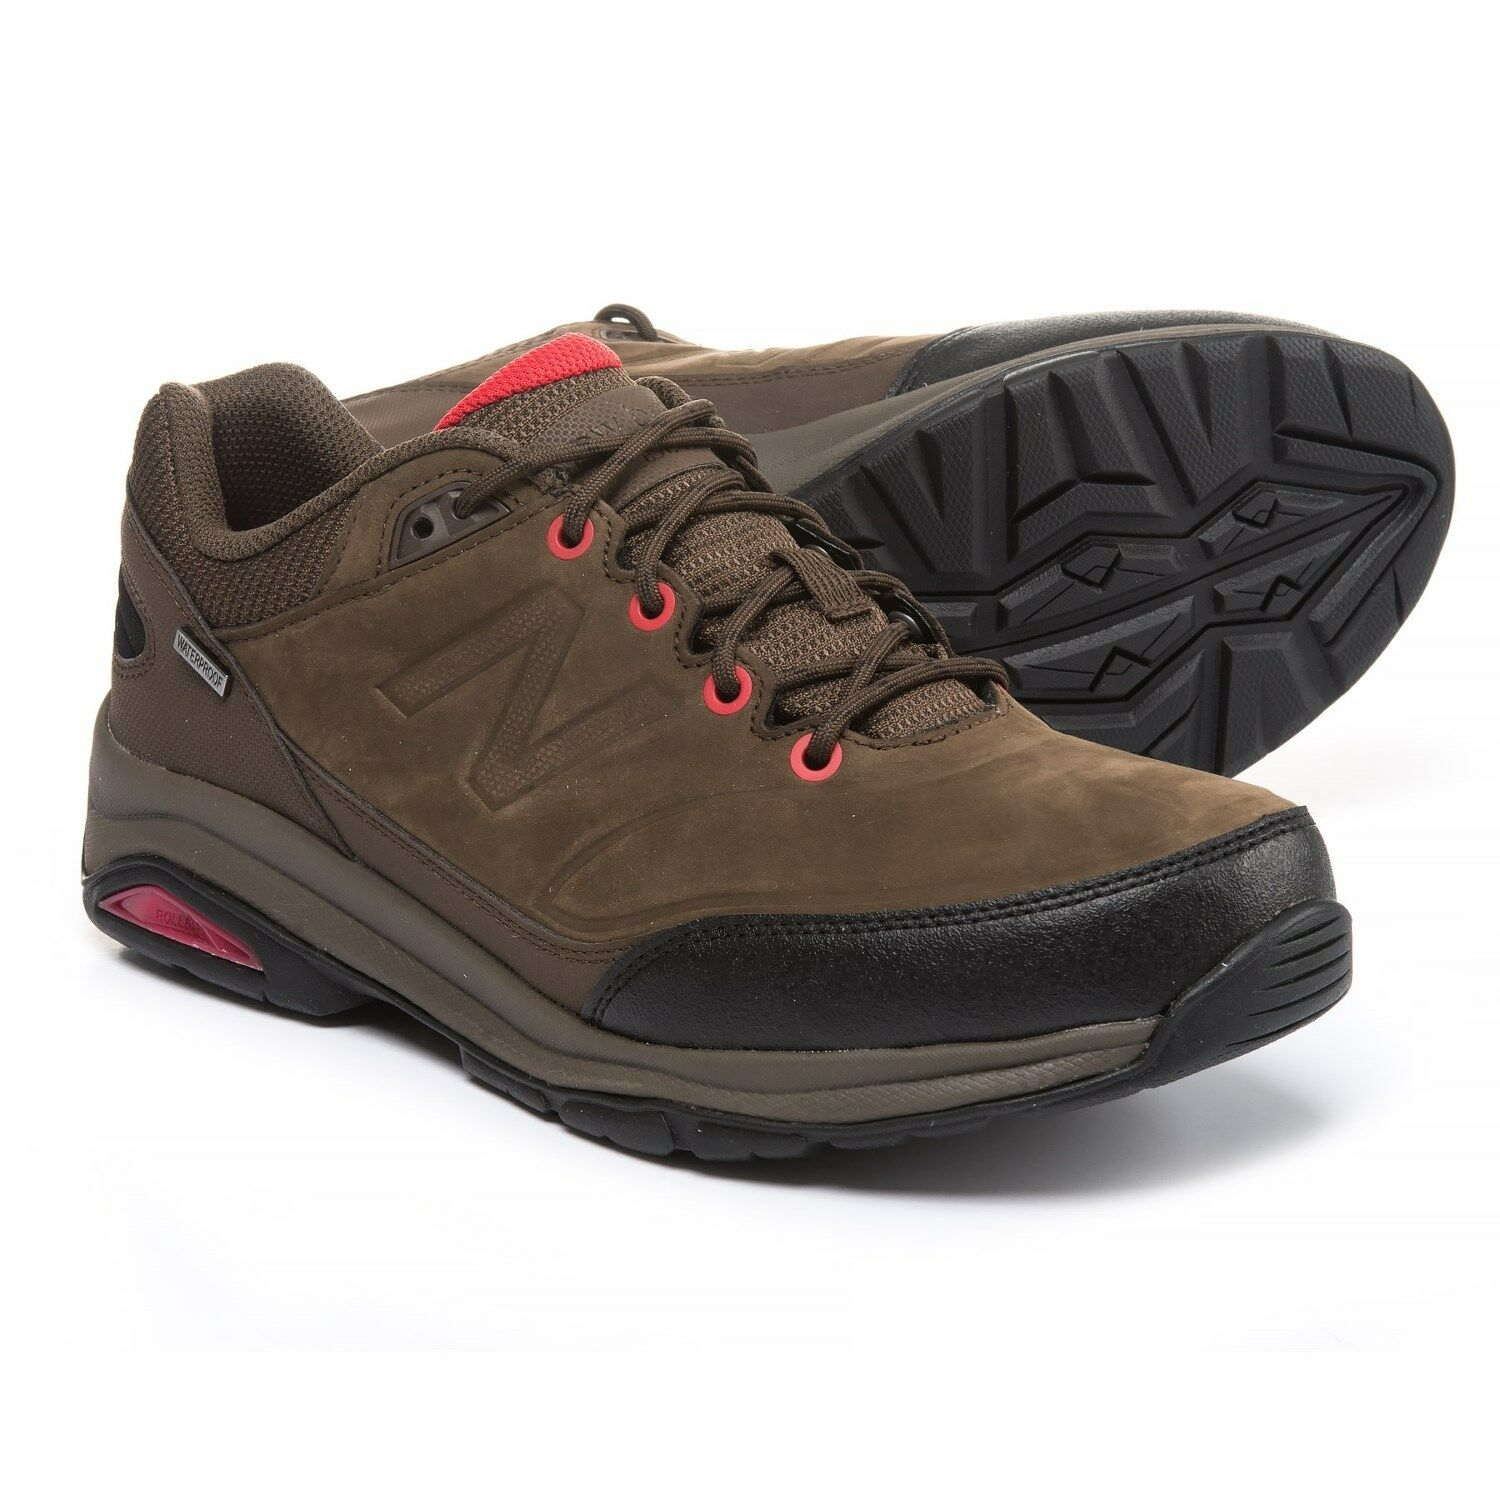 New Balance 1300 Men's Hiking Walking Shoes (Size 7.5 - 13) Brown / Red MW1300BR